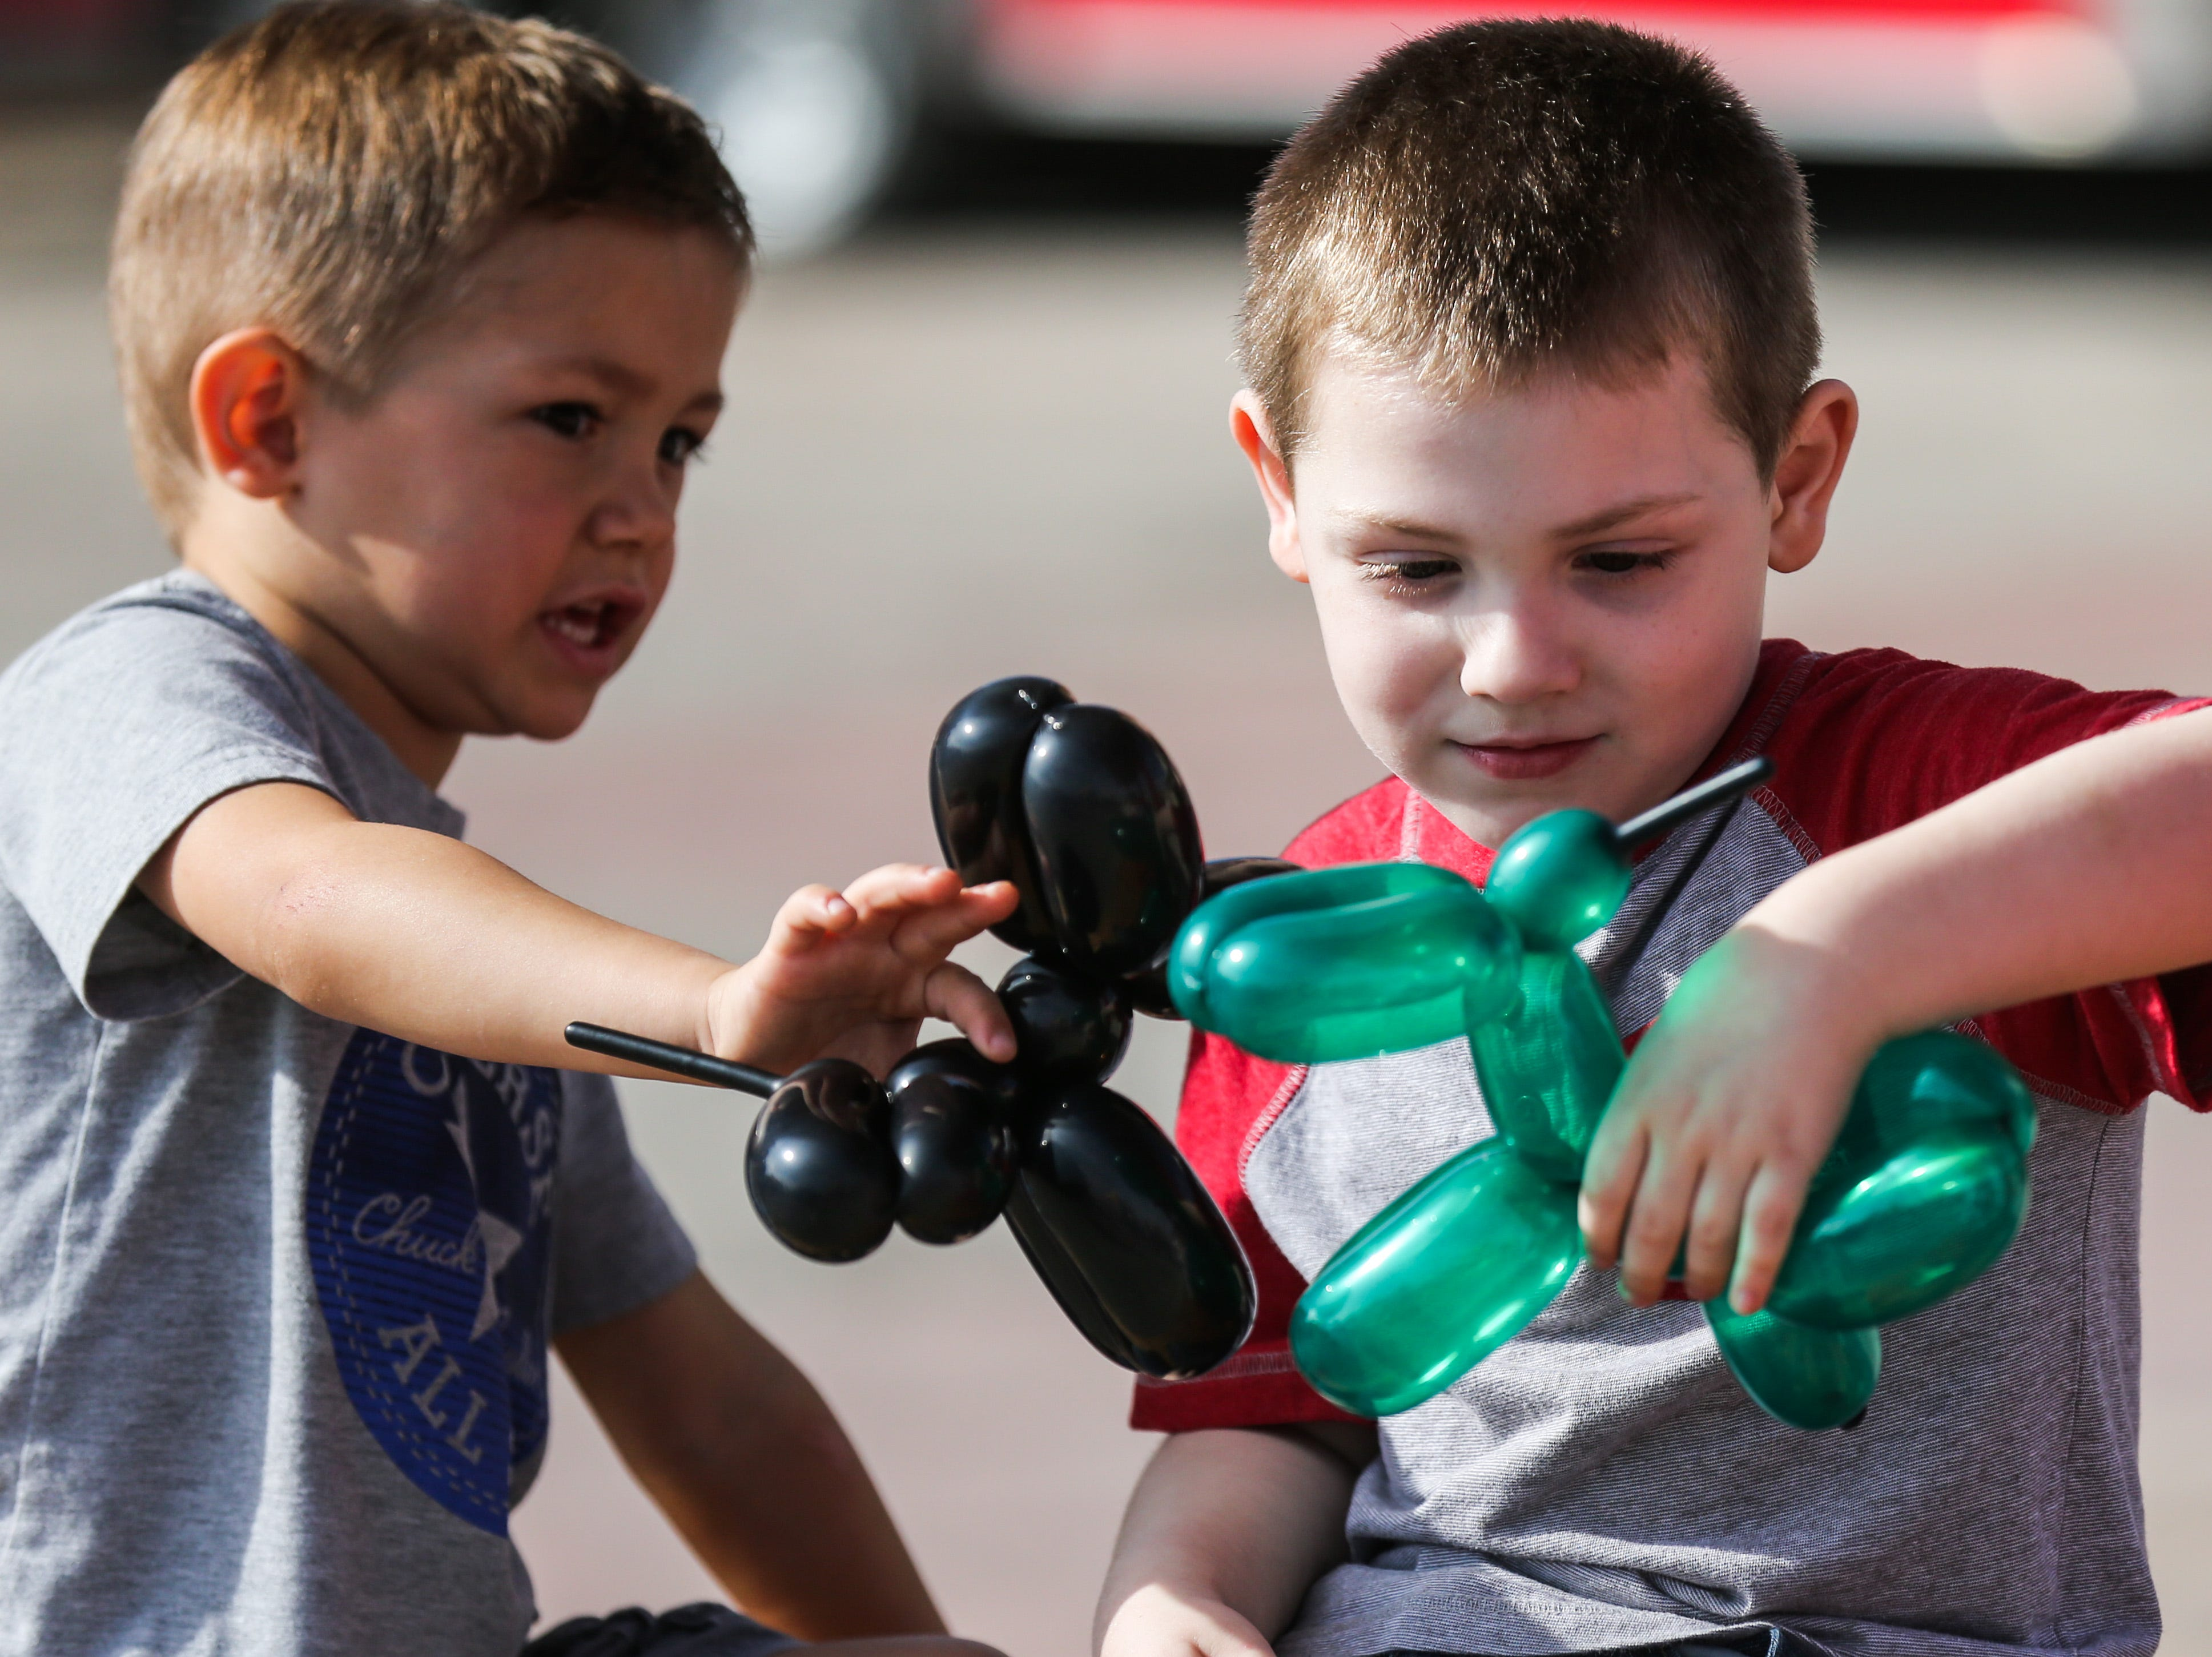 Jaxtyn Doggett and Daniel Guerra play with balloon animals during a field trip to the San Angelo Stock Show & Rodeo Tuesday, Feb. 5, 2019, at the San Angelo Fairgrounds.